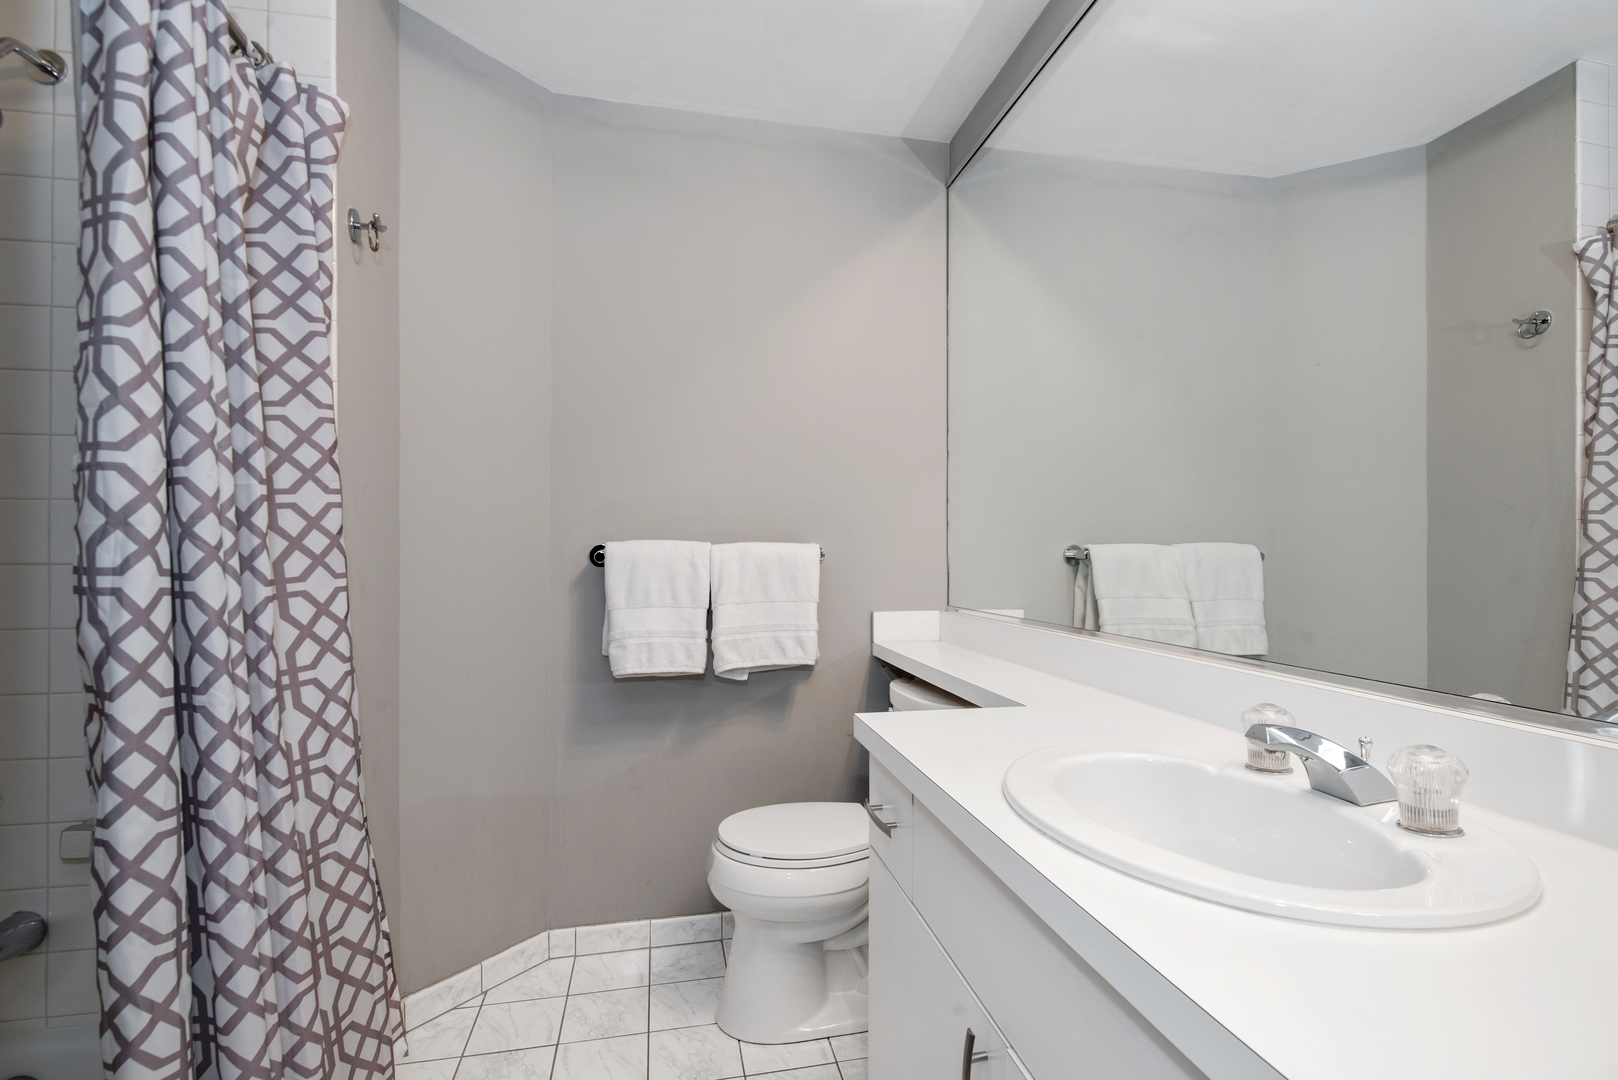 Hd 1582735787669 14 2100nracine1c 9 2ndbathroom hires